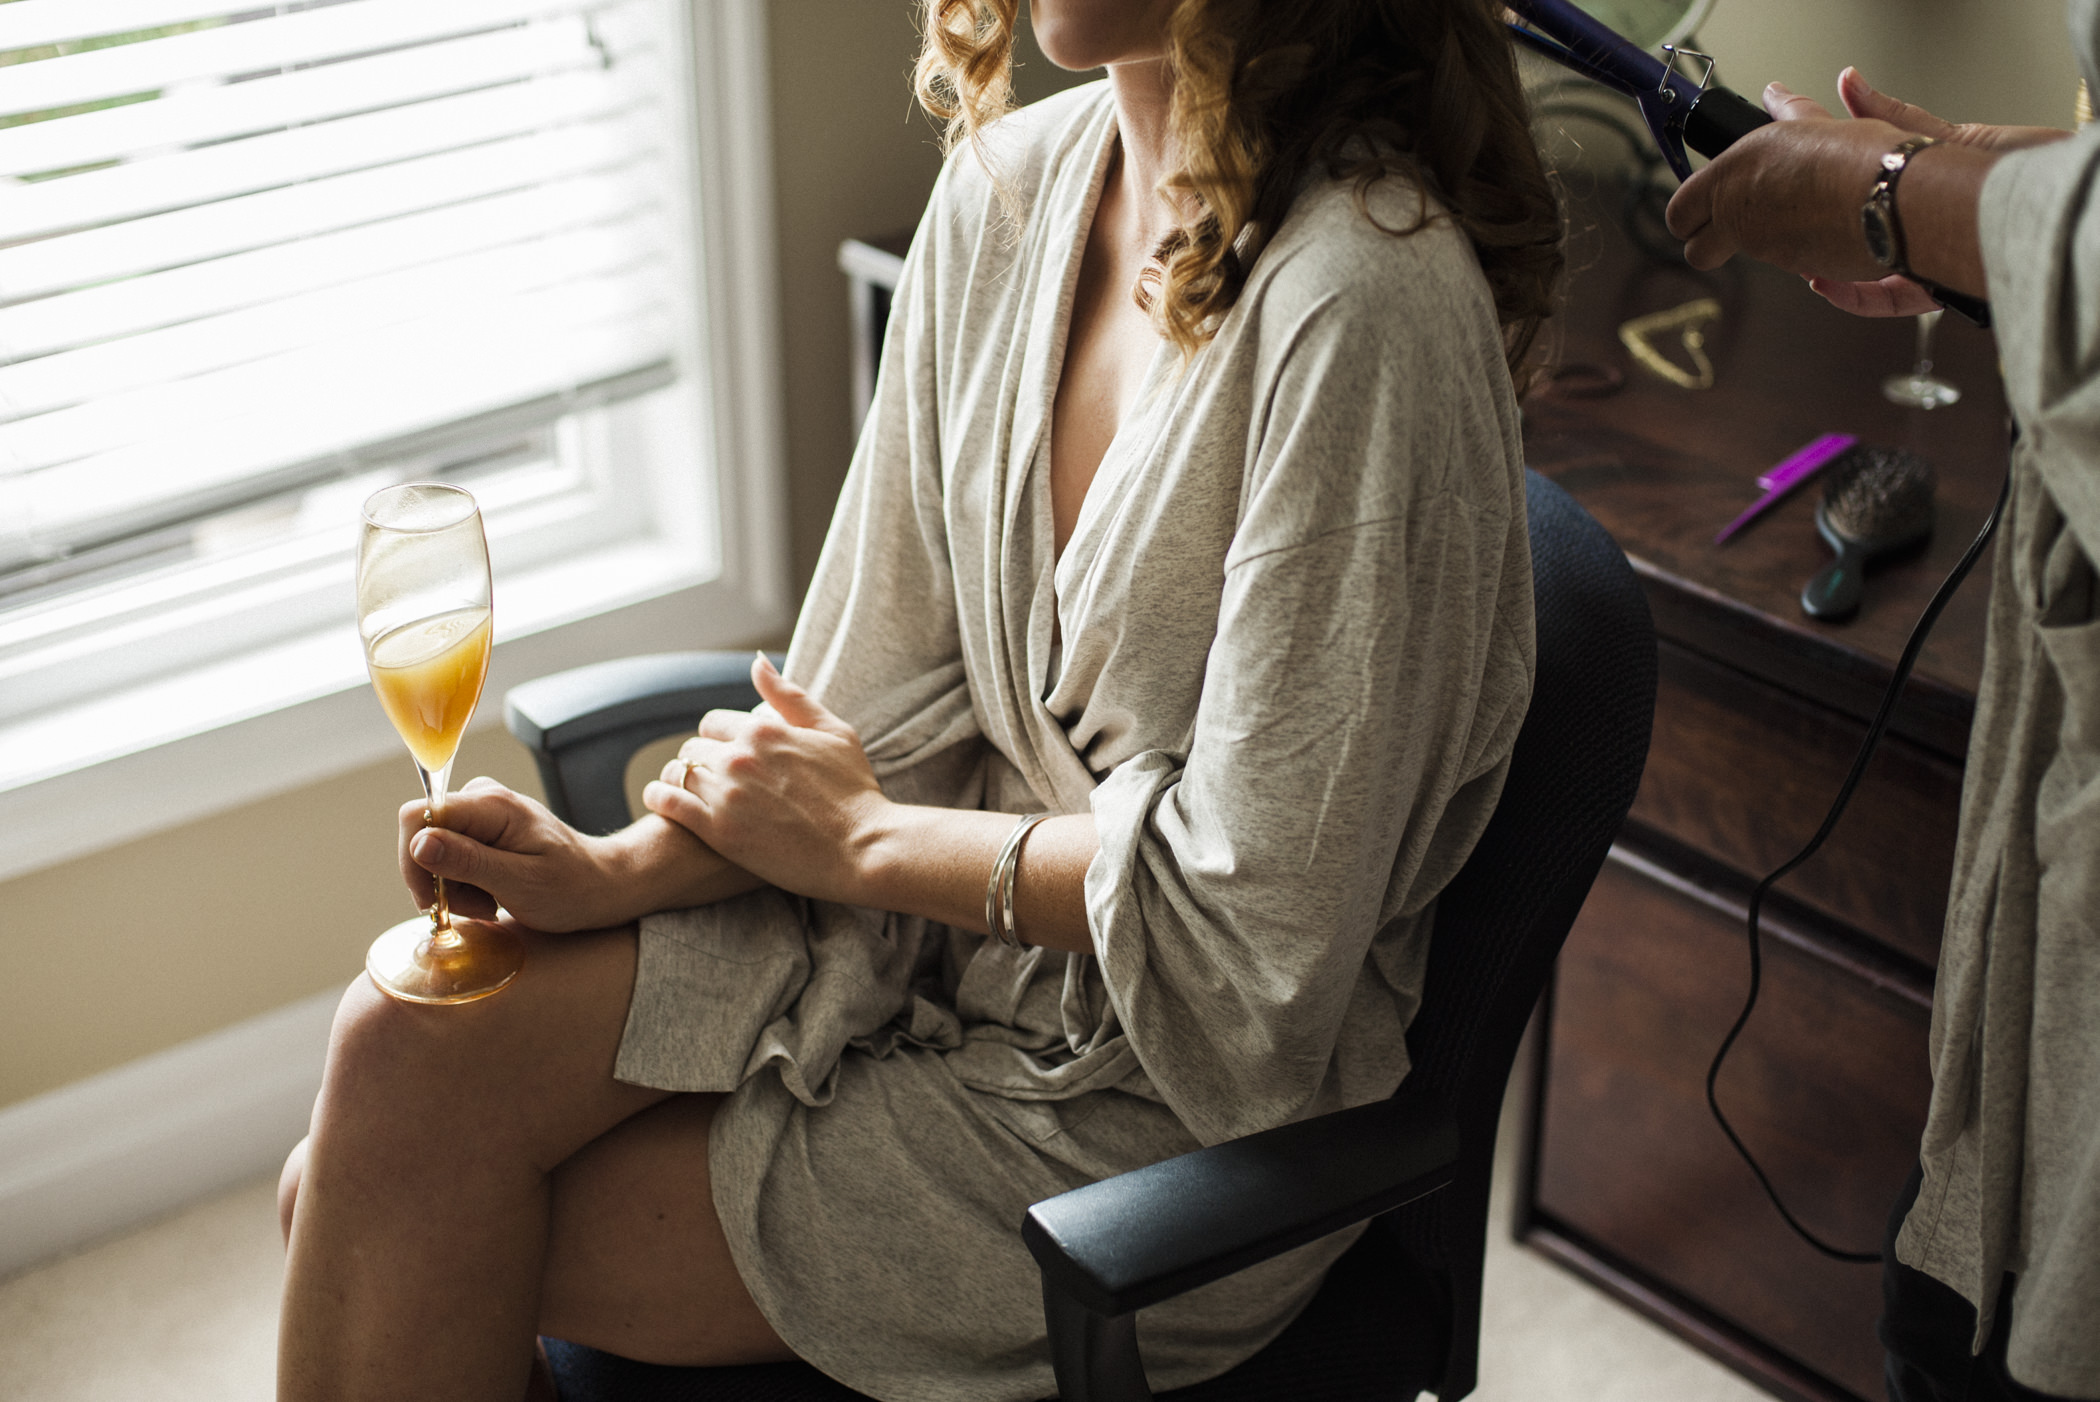 Bride drinking mimosa while getting hair done.